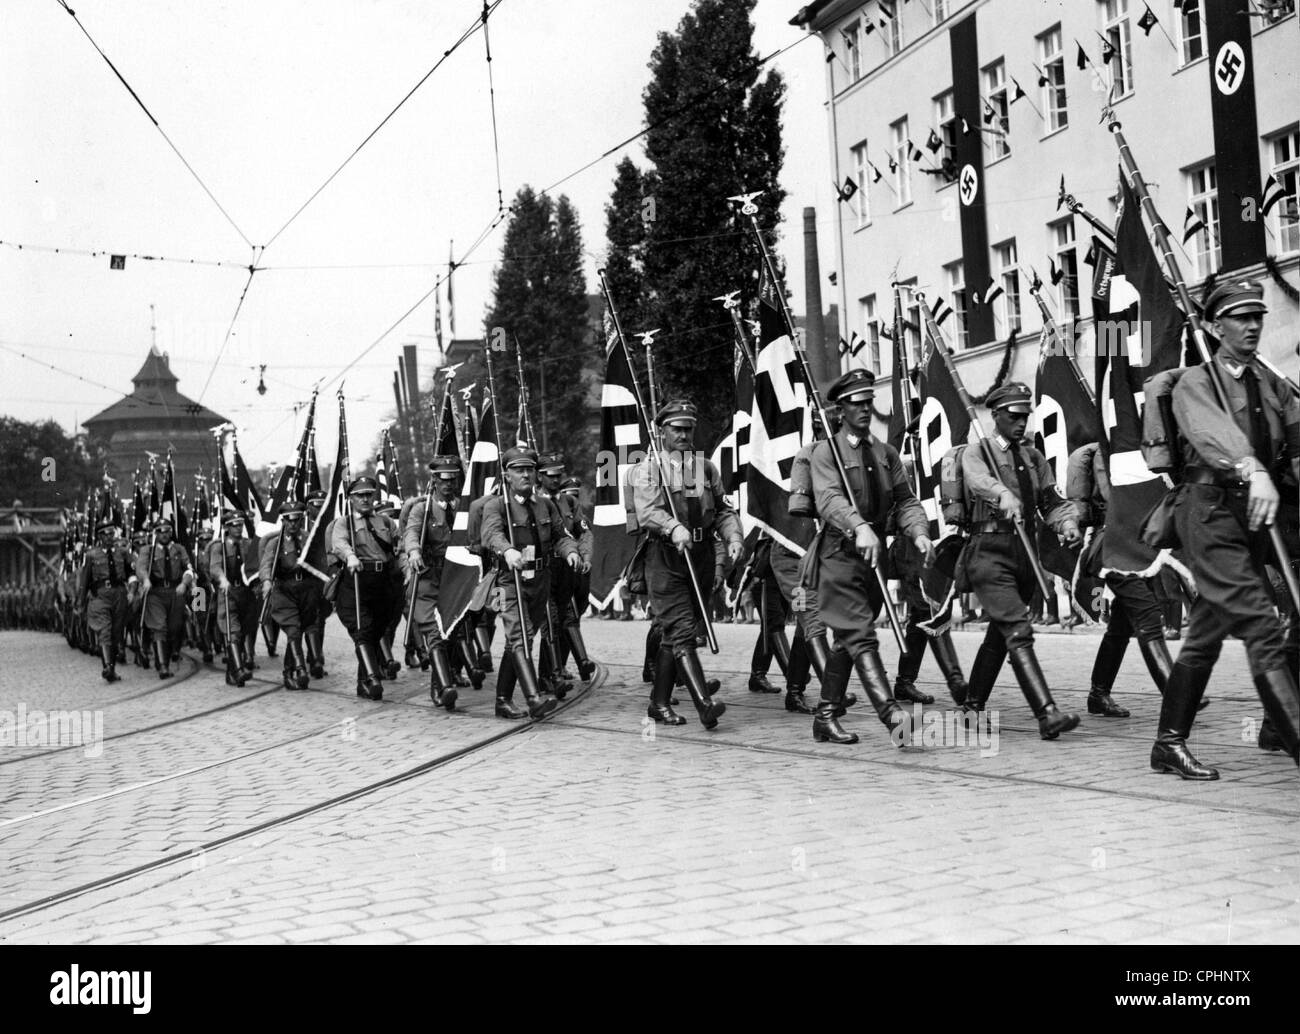 Political leaders march during the Nuremberg Rally, 1934 - Stock Image